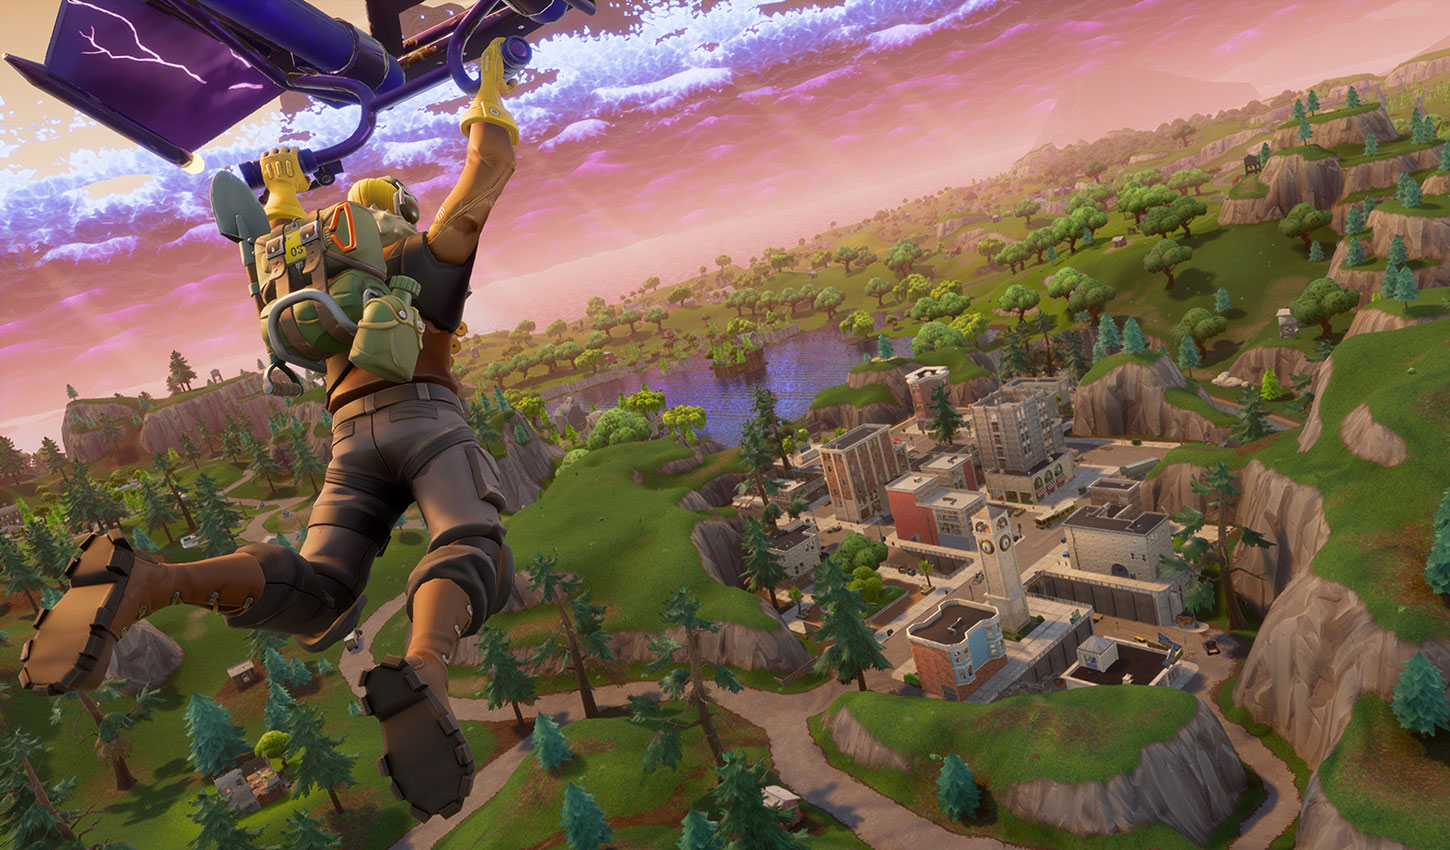 Fortnite First Revenue Hero  - fortnite mobile 2 - Mobile Fortnite Players Spent More Than $1 Million In-Game During First 72 Hours